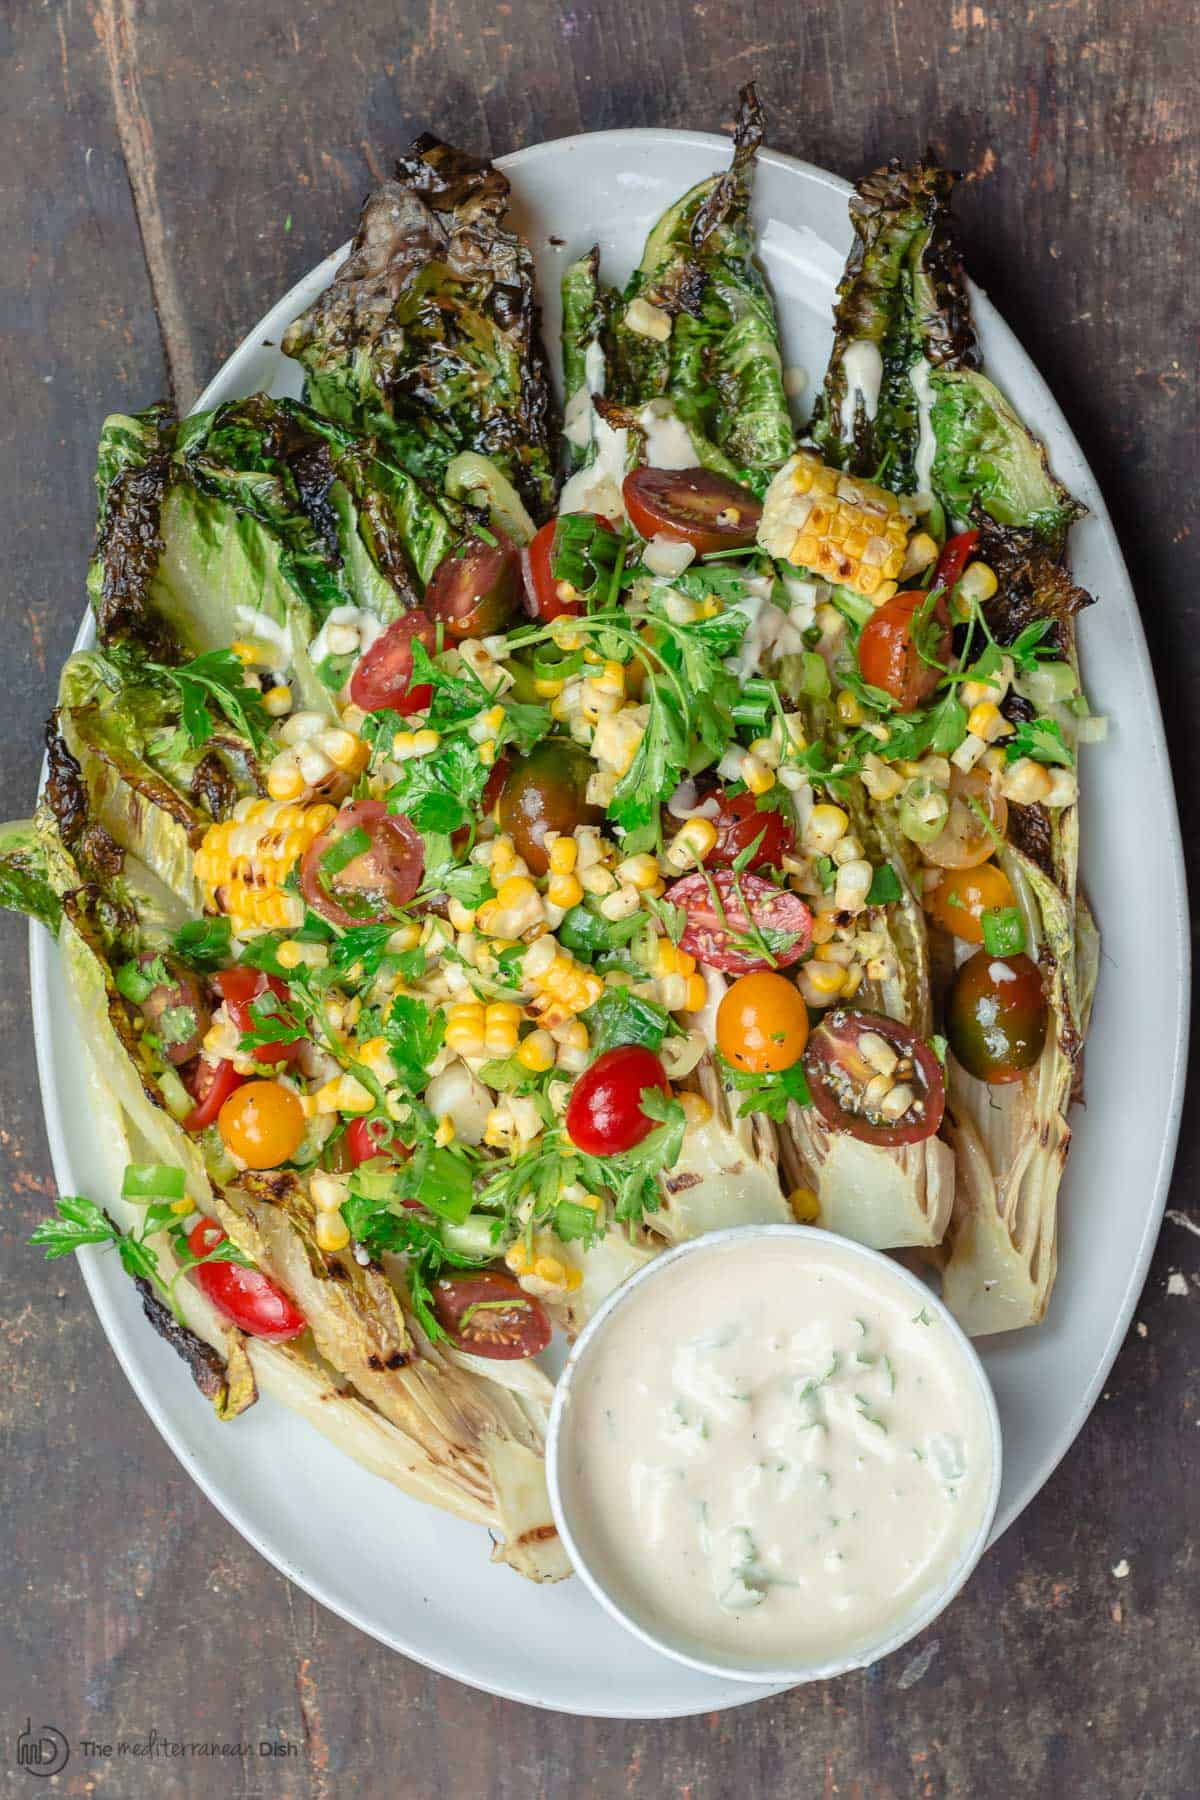 Grilled Lettuce Salad with corn, tomatoes, and a side of tahini sauce